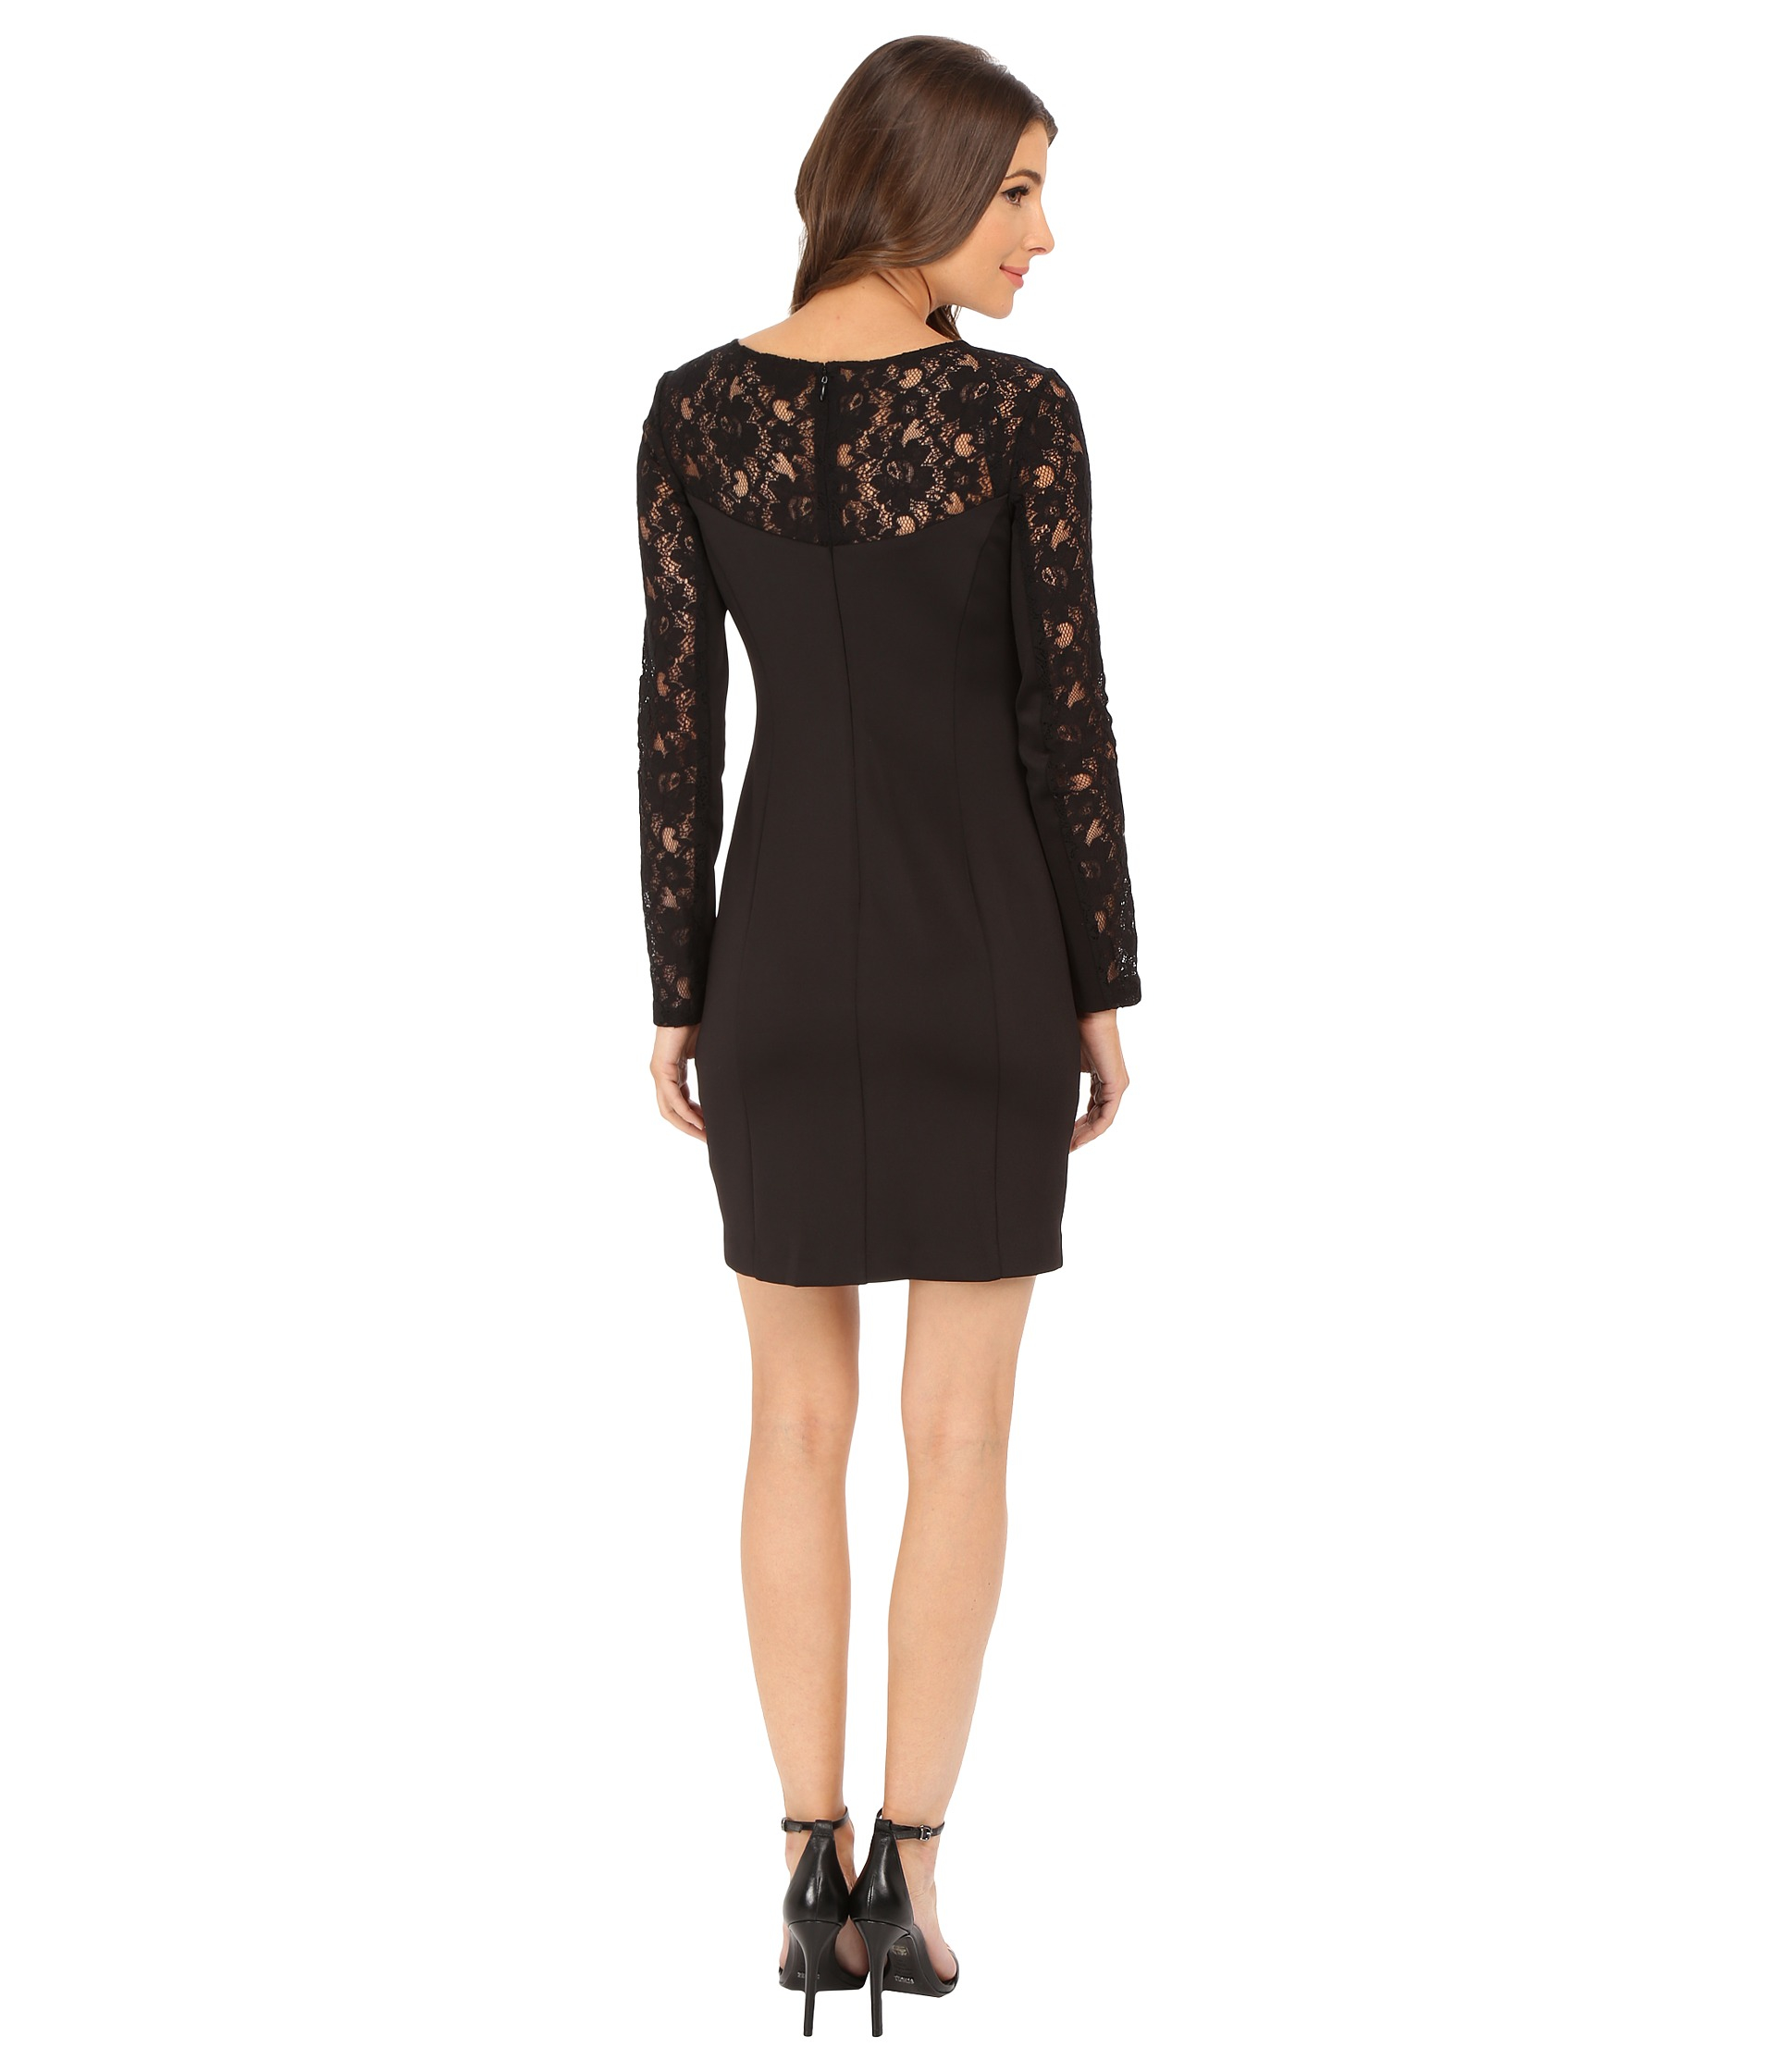 54af7c5abd8 Lyst - Jessica Simpson Scuba Dress With Lace Long Sleeves in Black